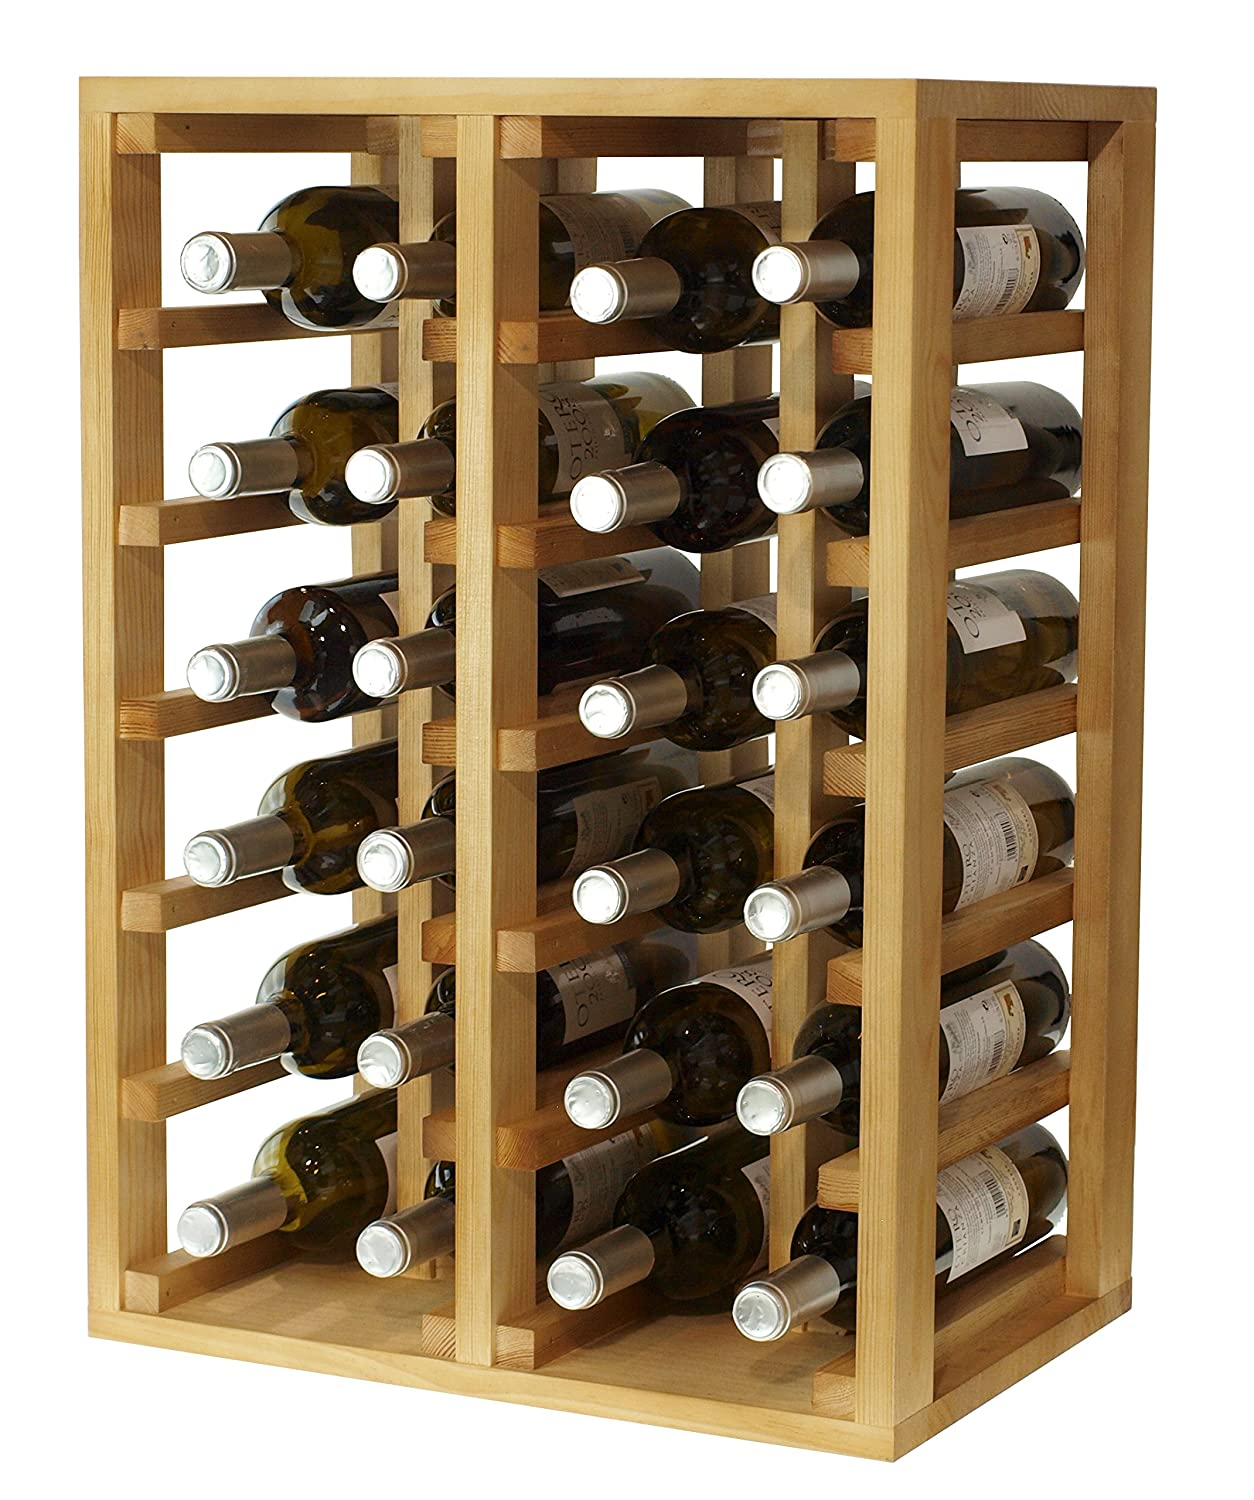 Expovinalia Wine Rack for 24 bottles, Wood, light oak, 66 x 46 x 32 cm ex2014